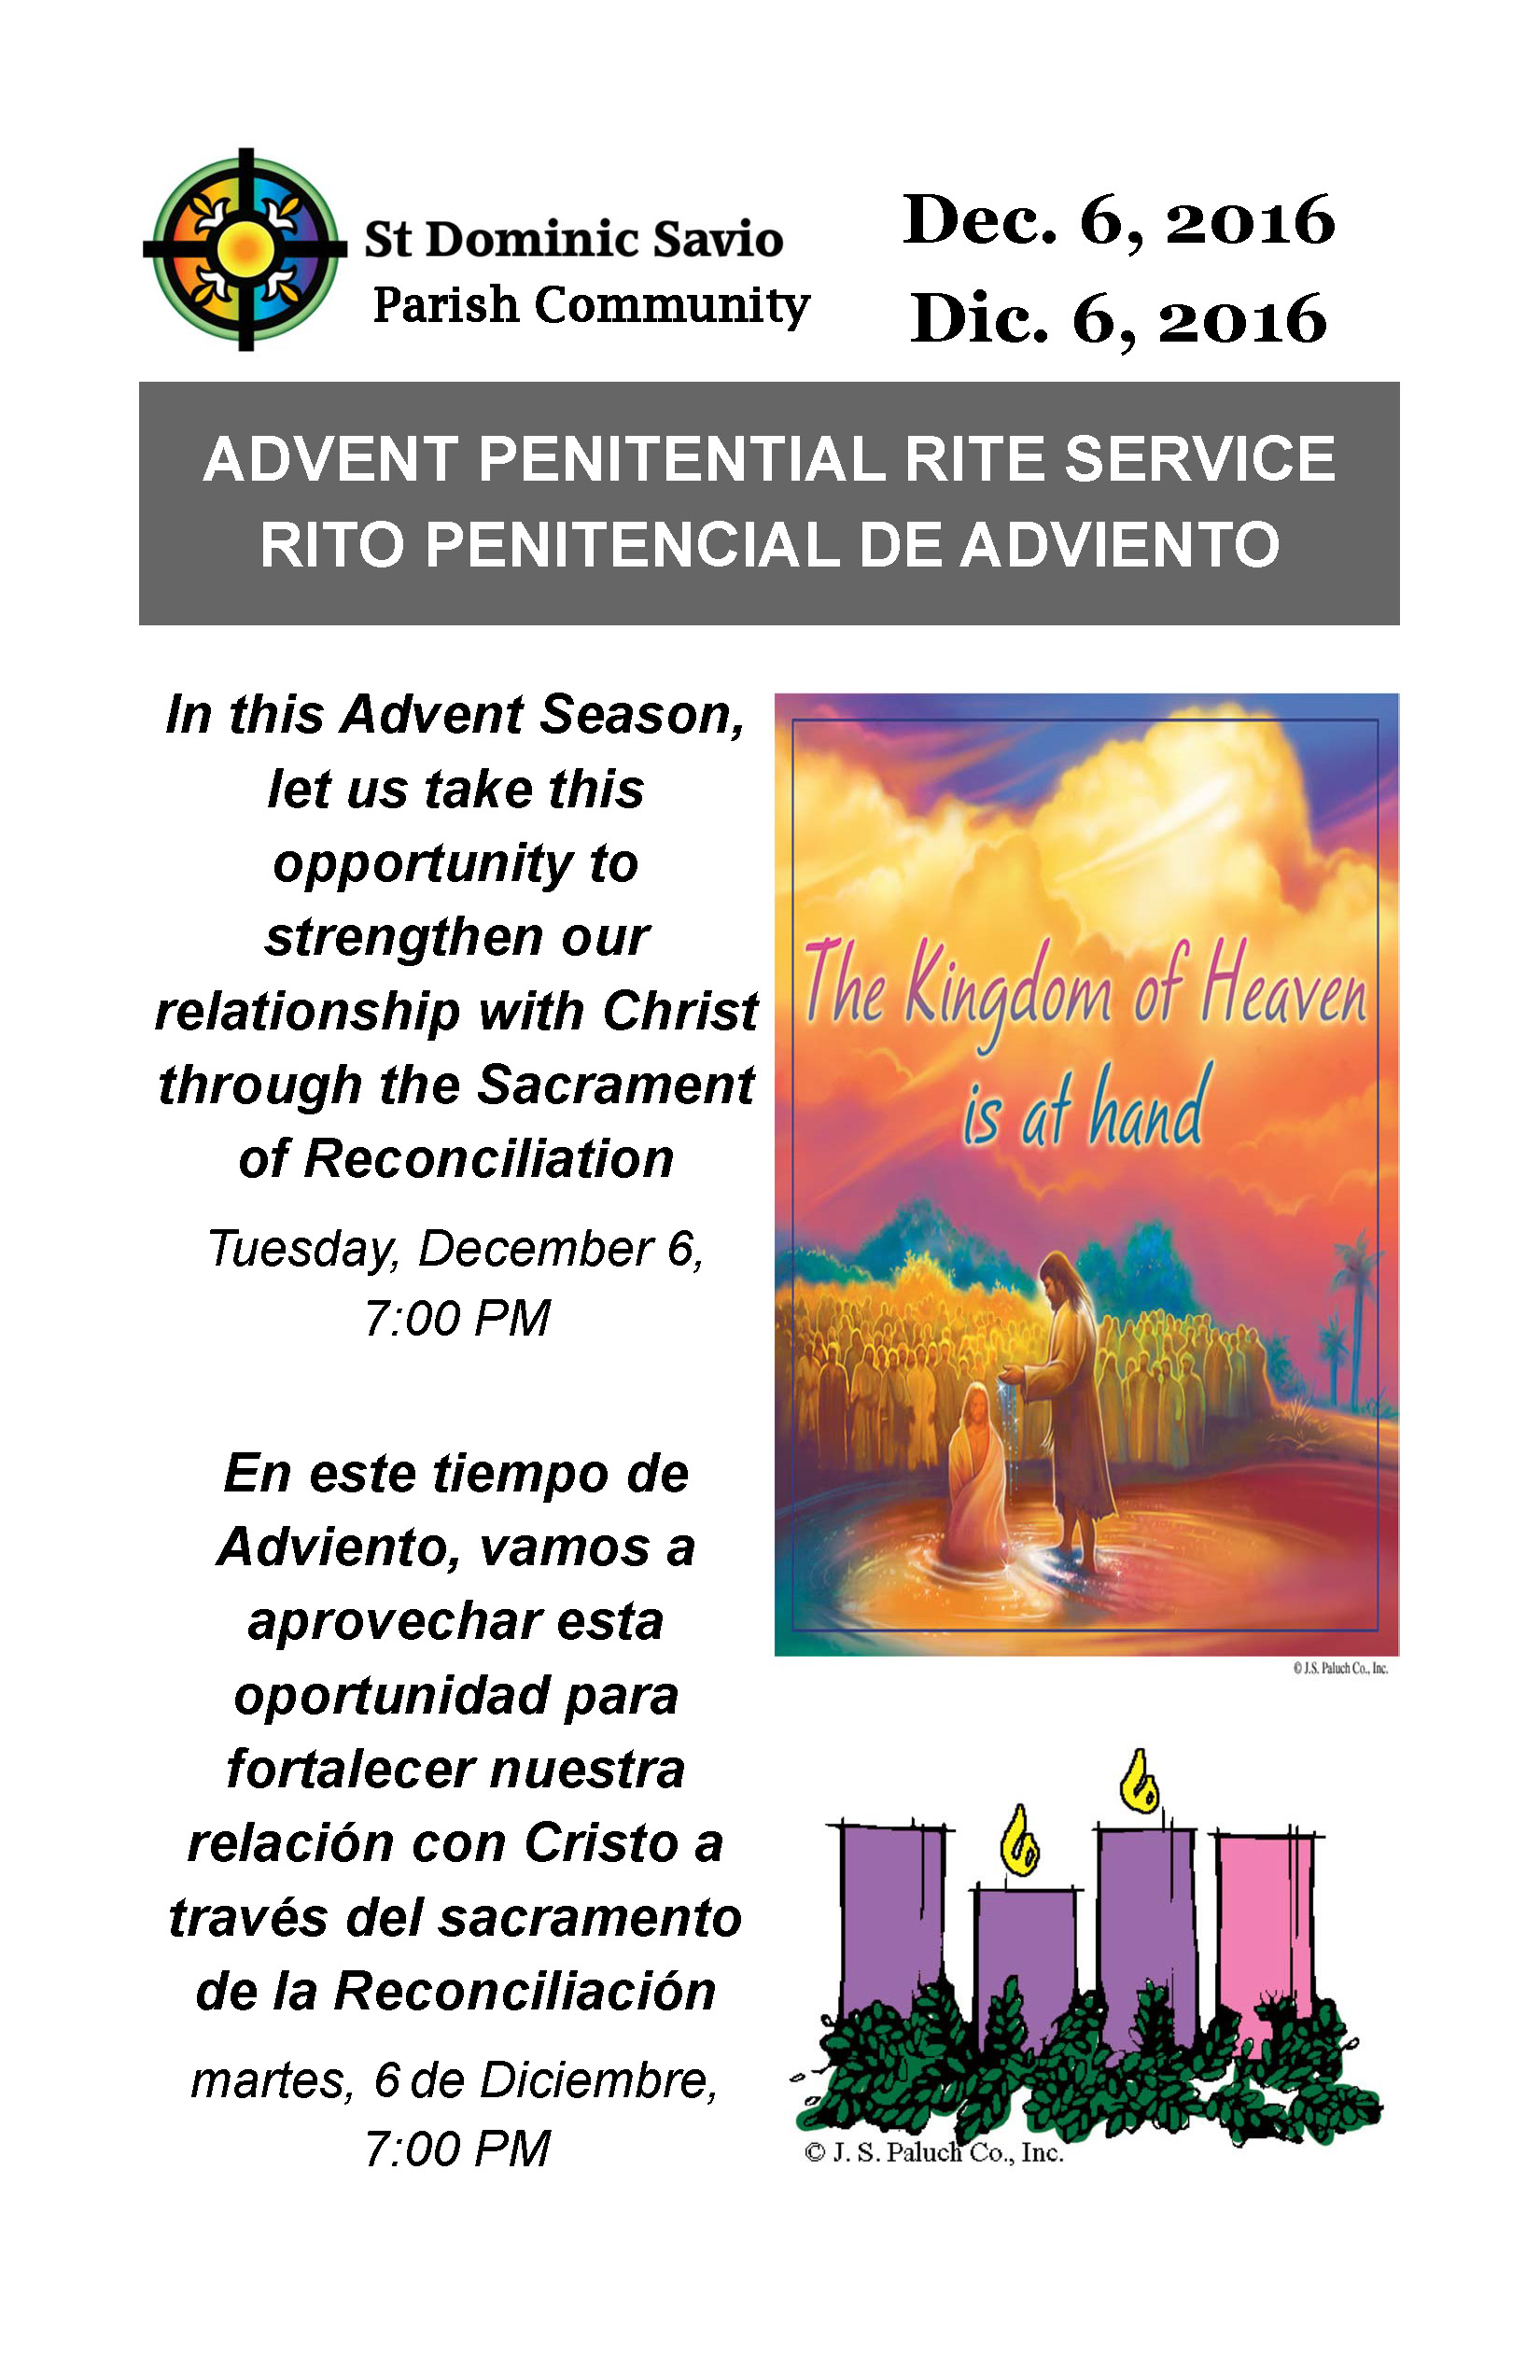 Advent Penitential Service 2016 Flyer